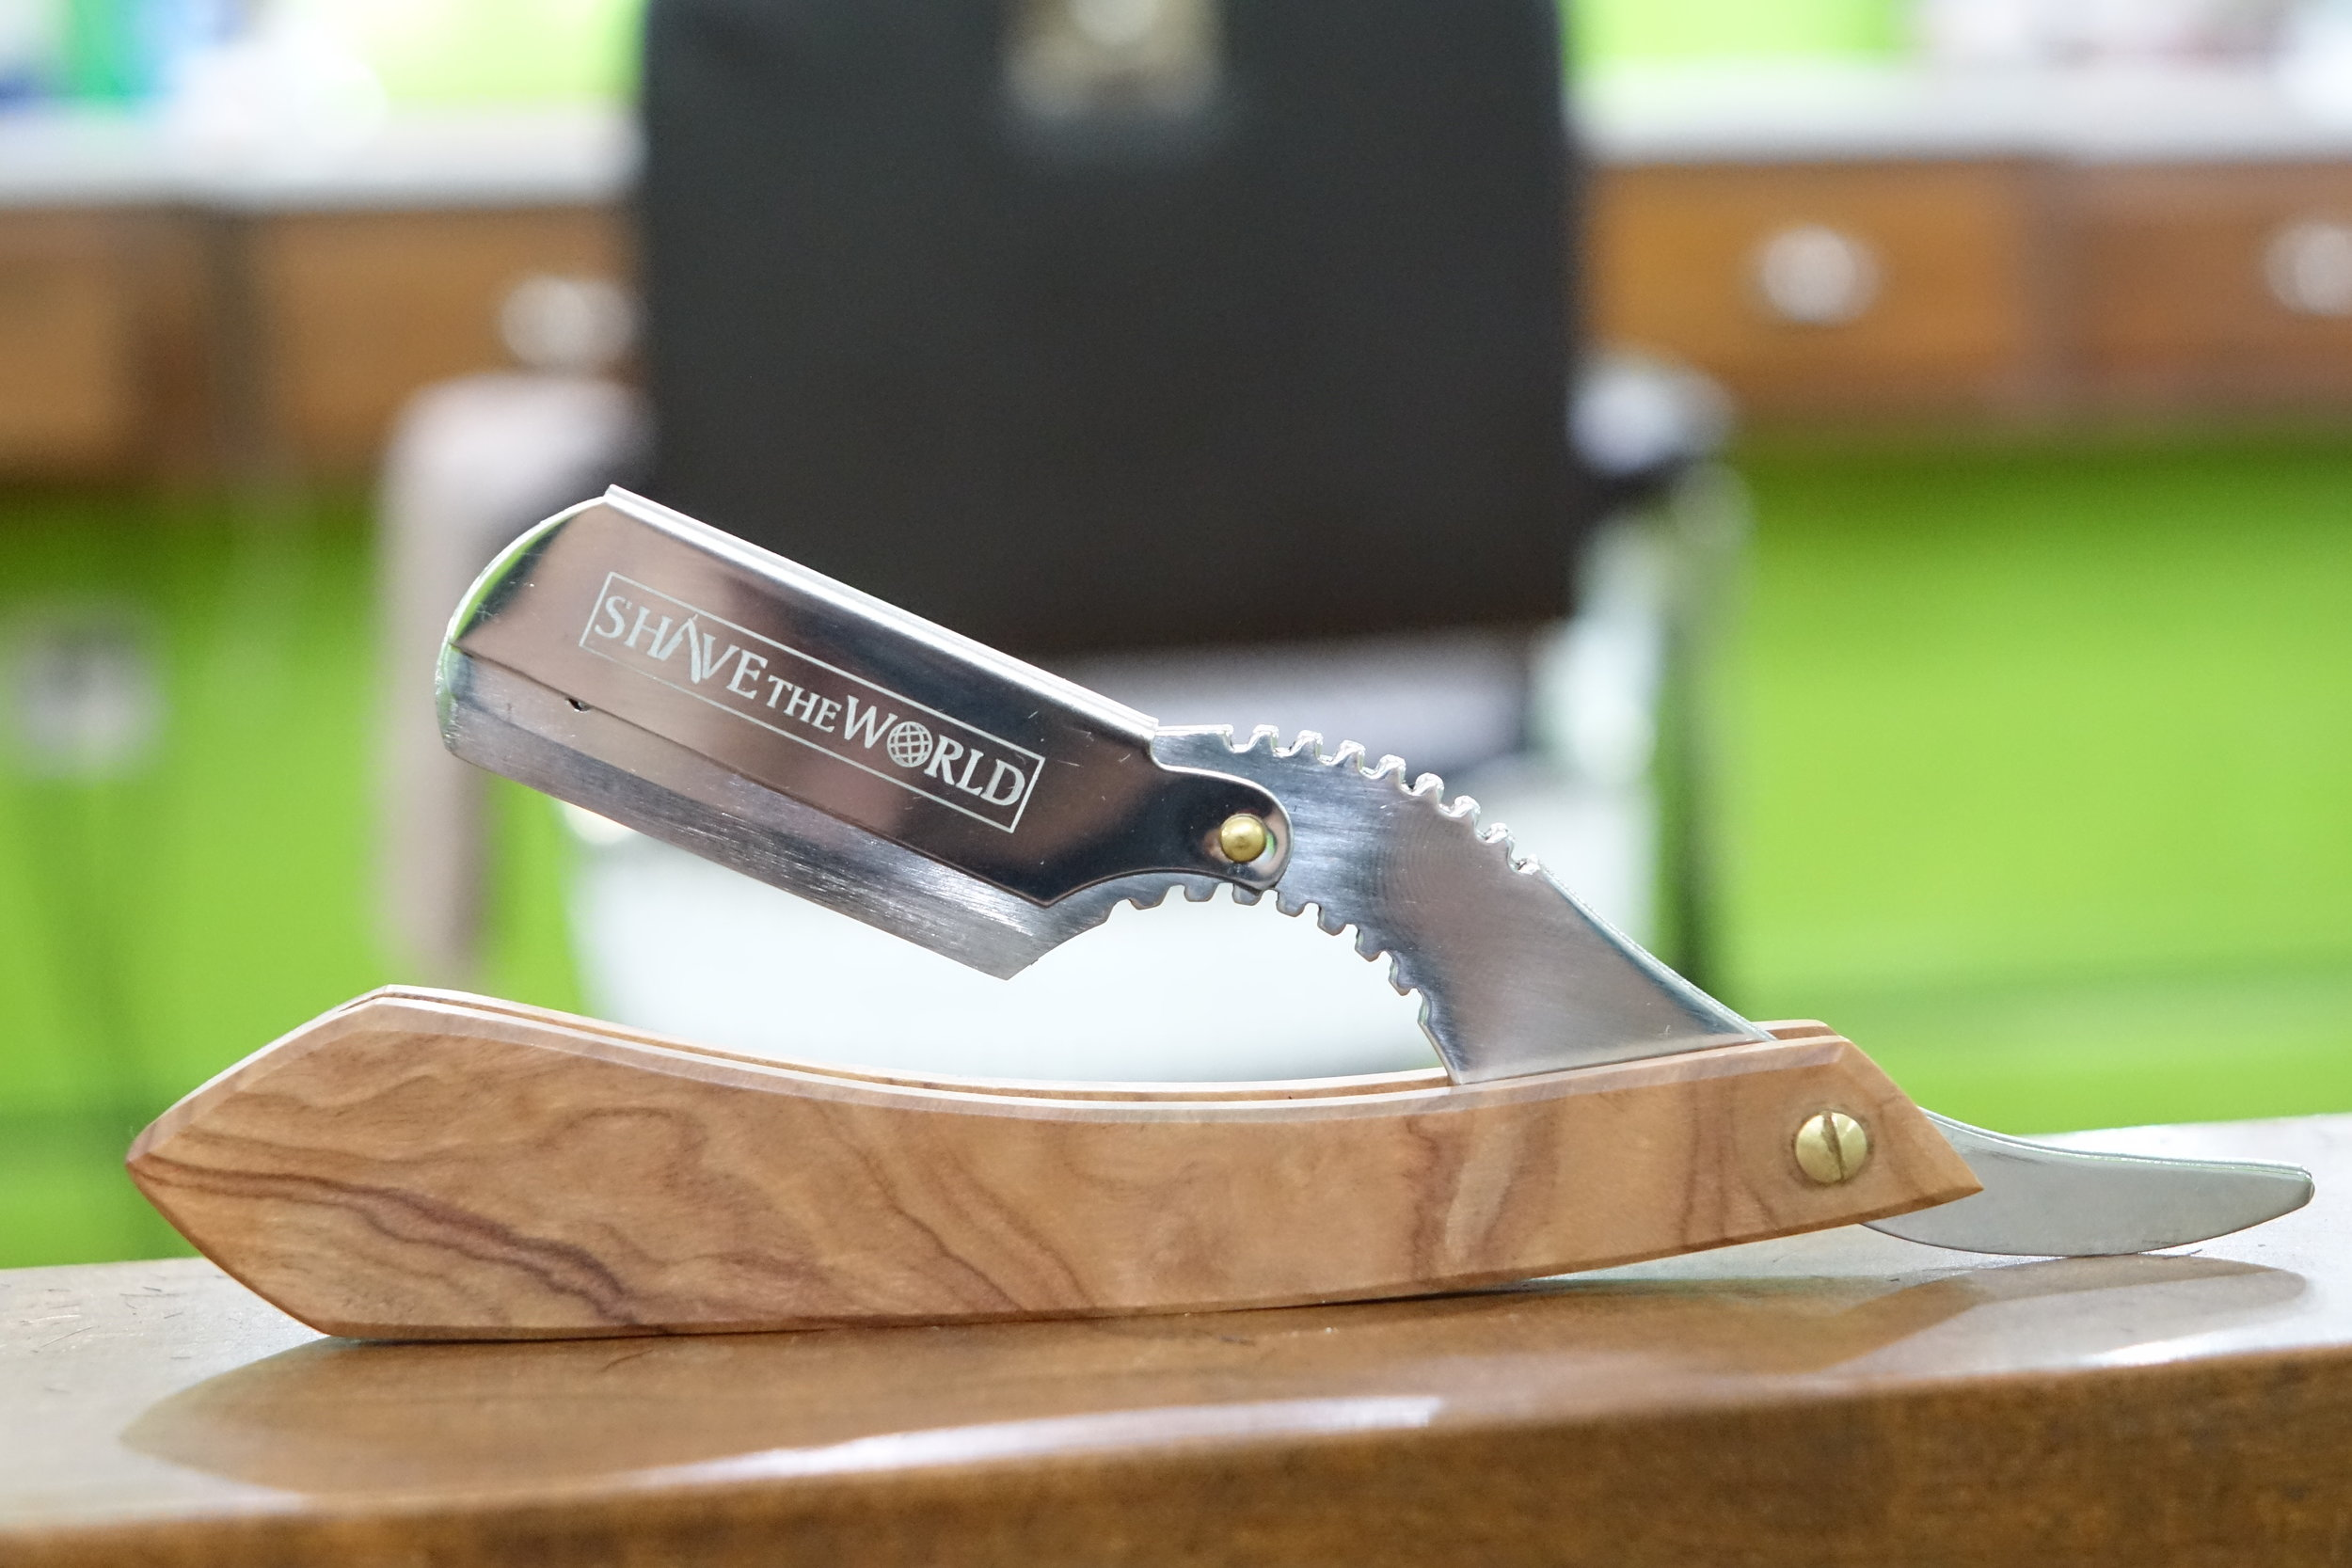 The Dutch - Stainless steel razor body and sturdy wood handle, this piece is a touch of class. These razors are an homage to the barbershops in Amsterdam. Like the dutch barbers and their shops, these razors boast clean lines, a sleek/modern look with a touch of the old world.